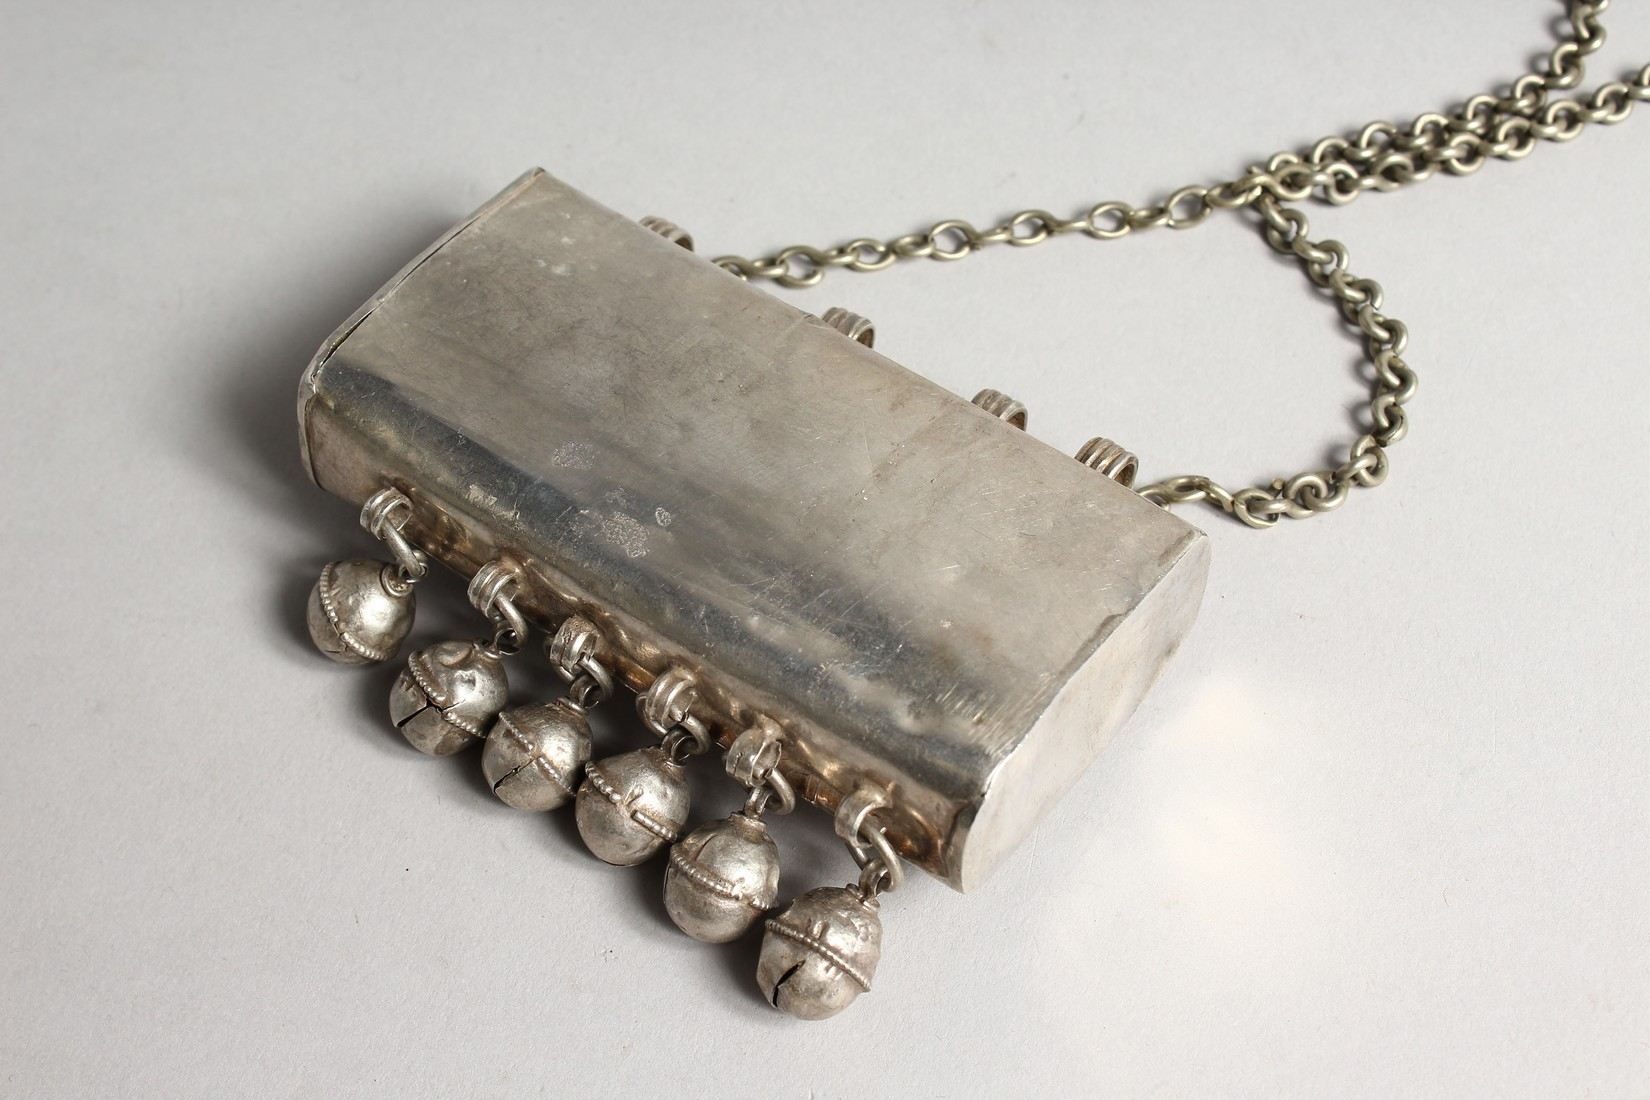 AN ISLAMIC SILVER BOX with bells, stone and chain - Image 3 of 3